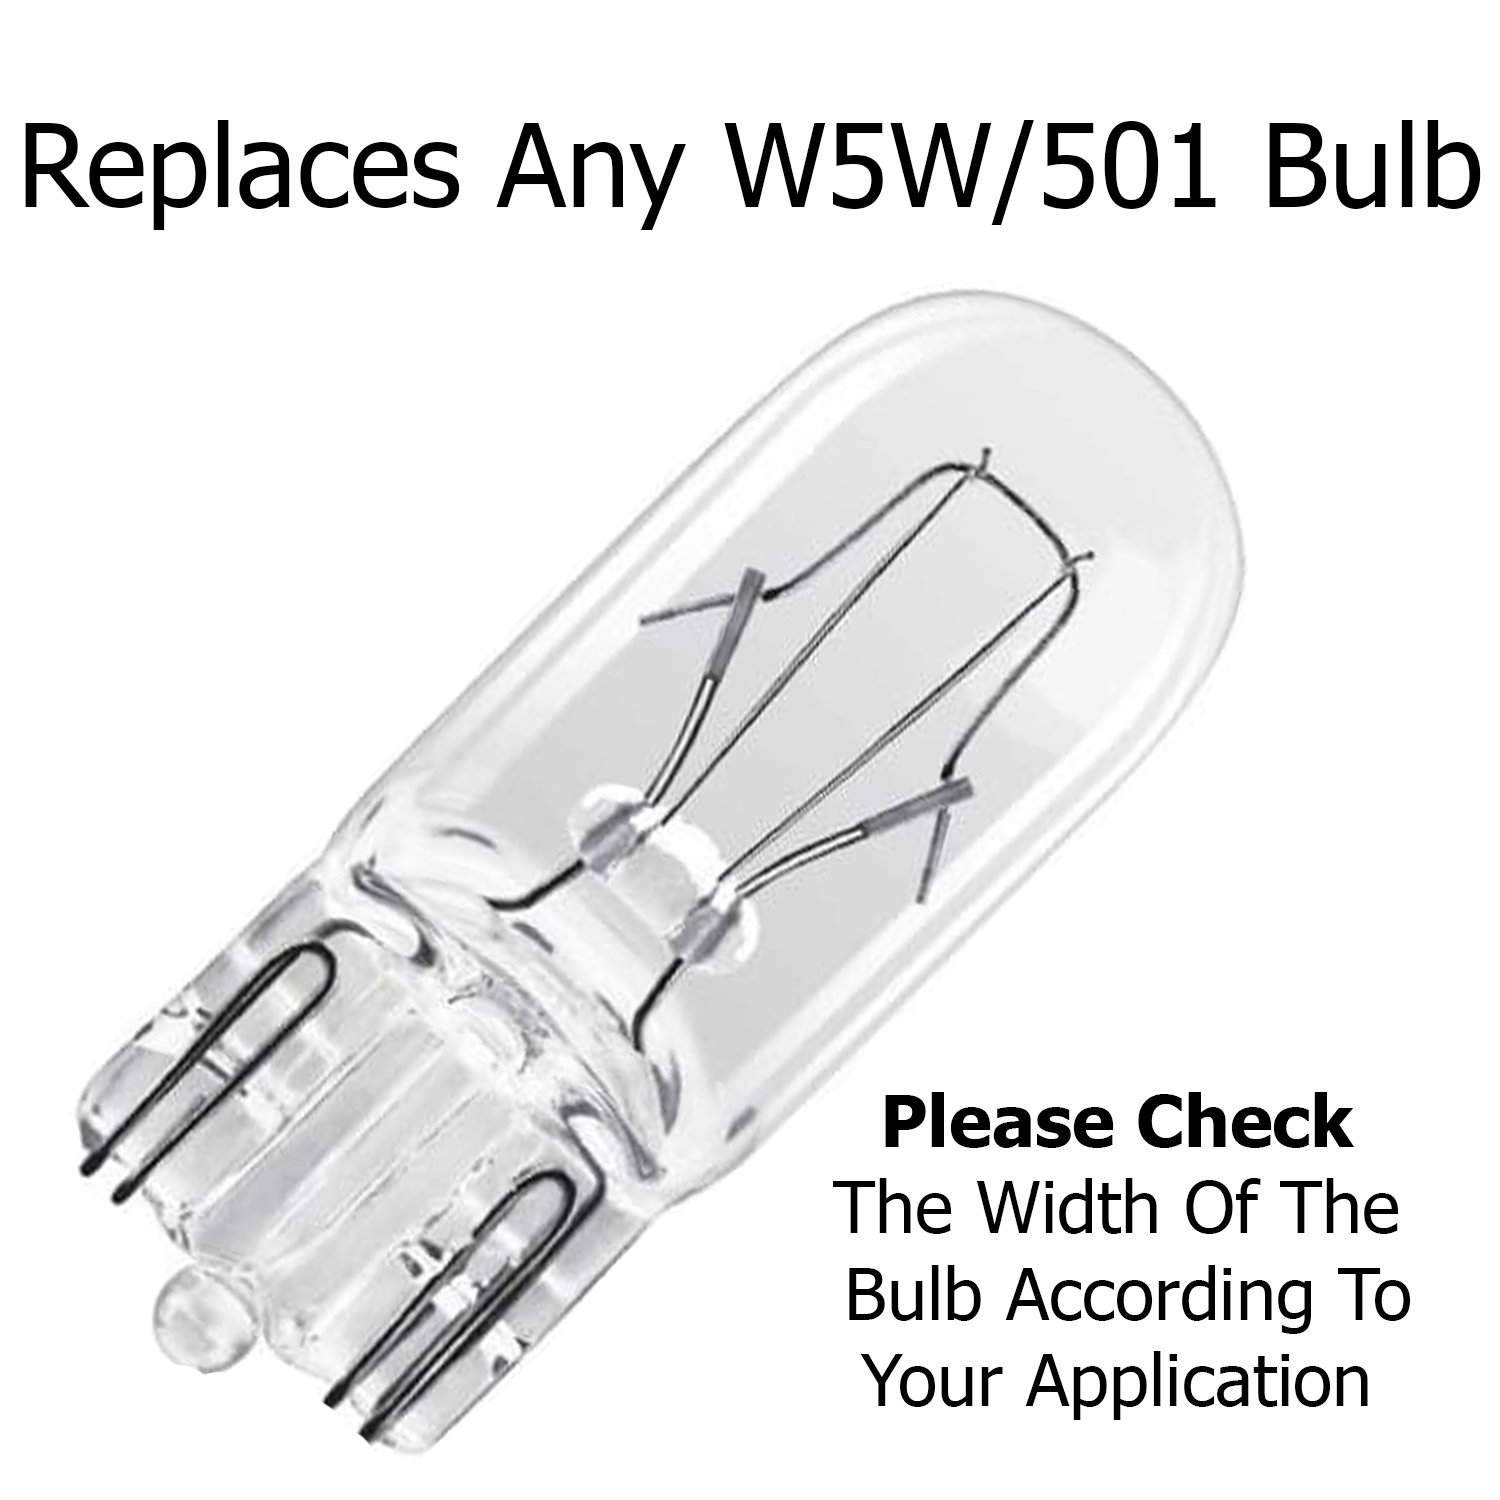 Amazon.com: UltraVision LED 501 Interior Bulbs, 12 V, 5 W, Pack of 2 – FREE 12 Month Warranty: Automotive